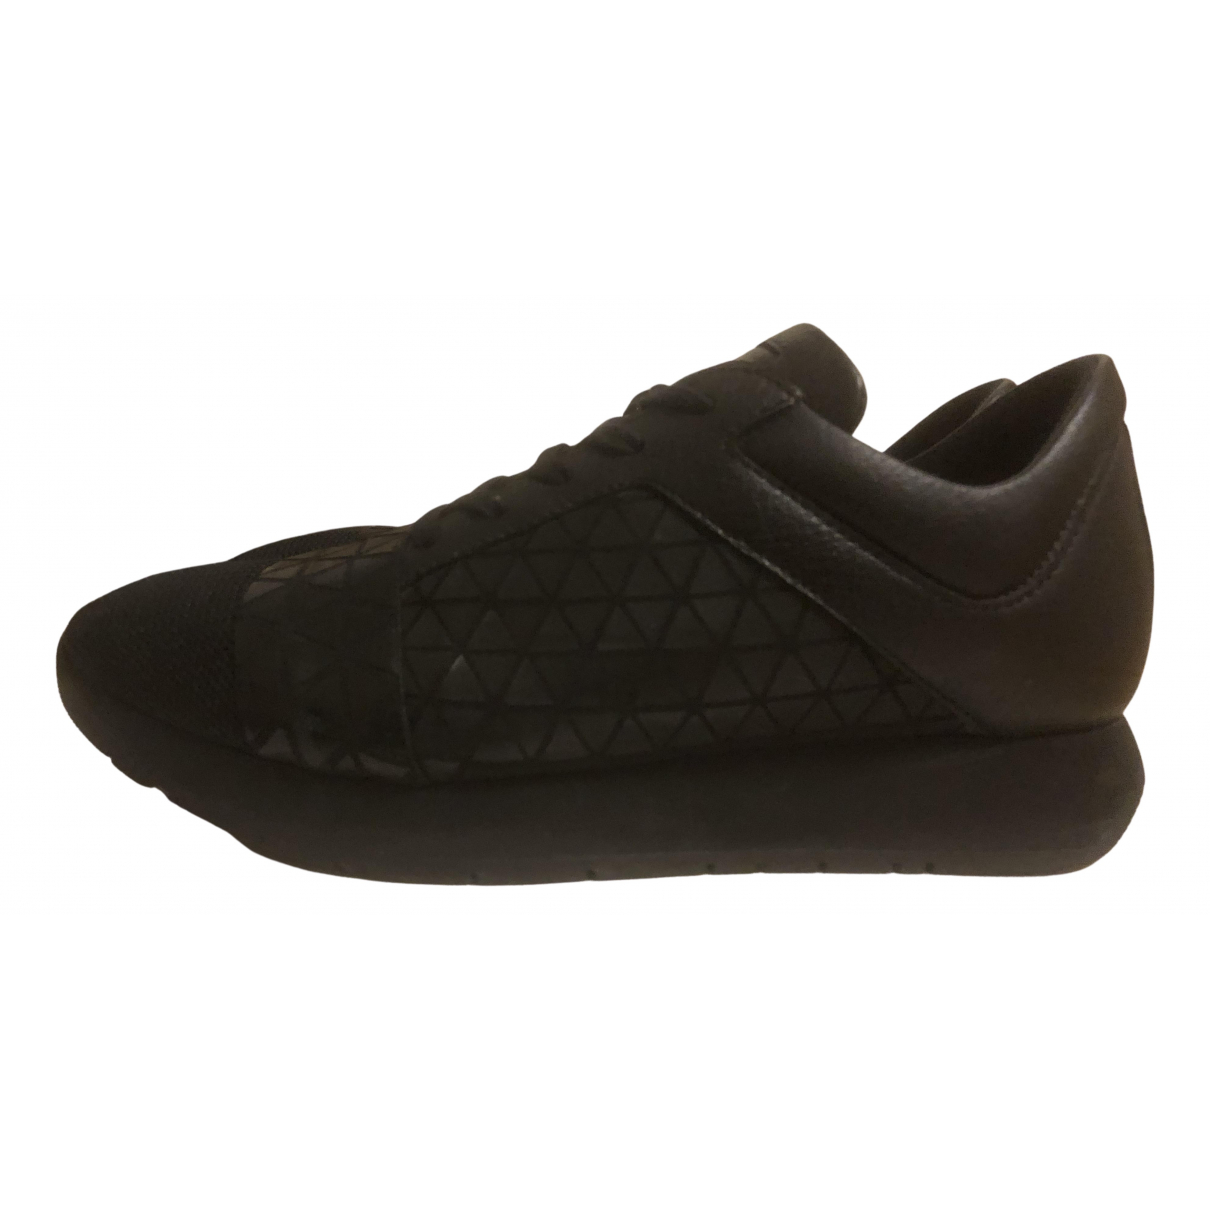 Dirk Bikkembergs N Black Cloth Trainers for Women 37 IT